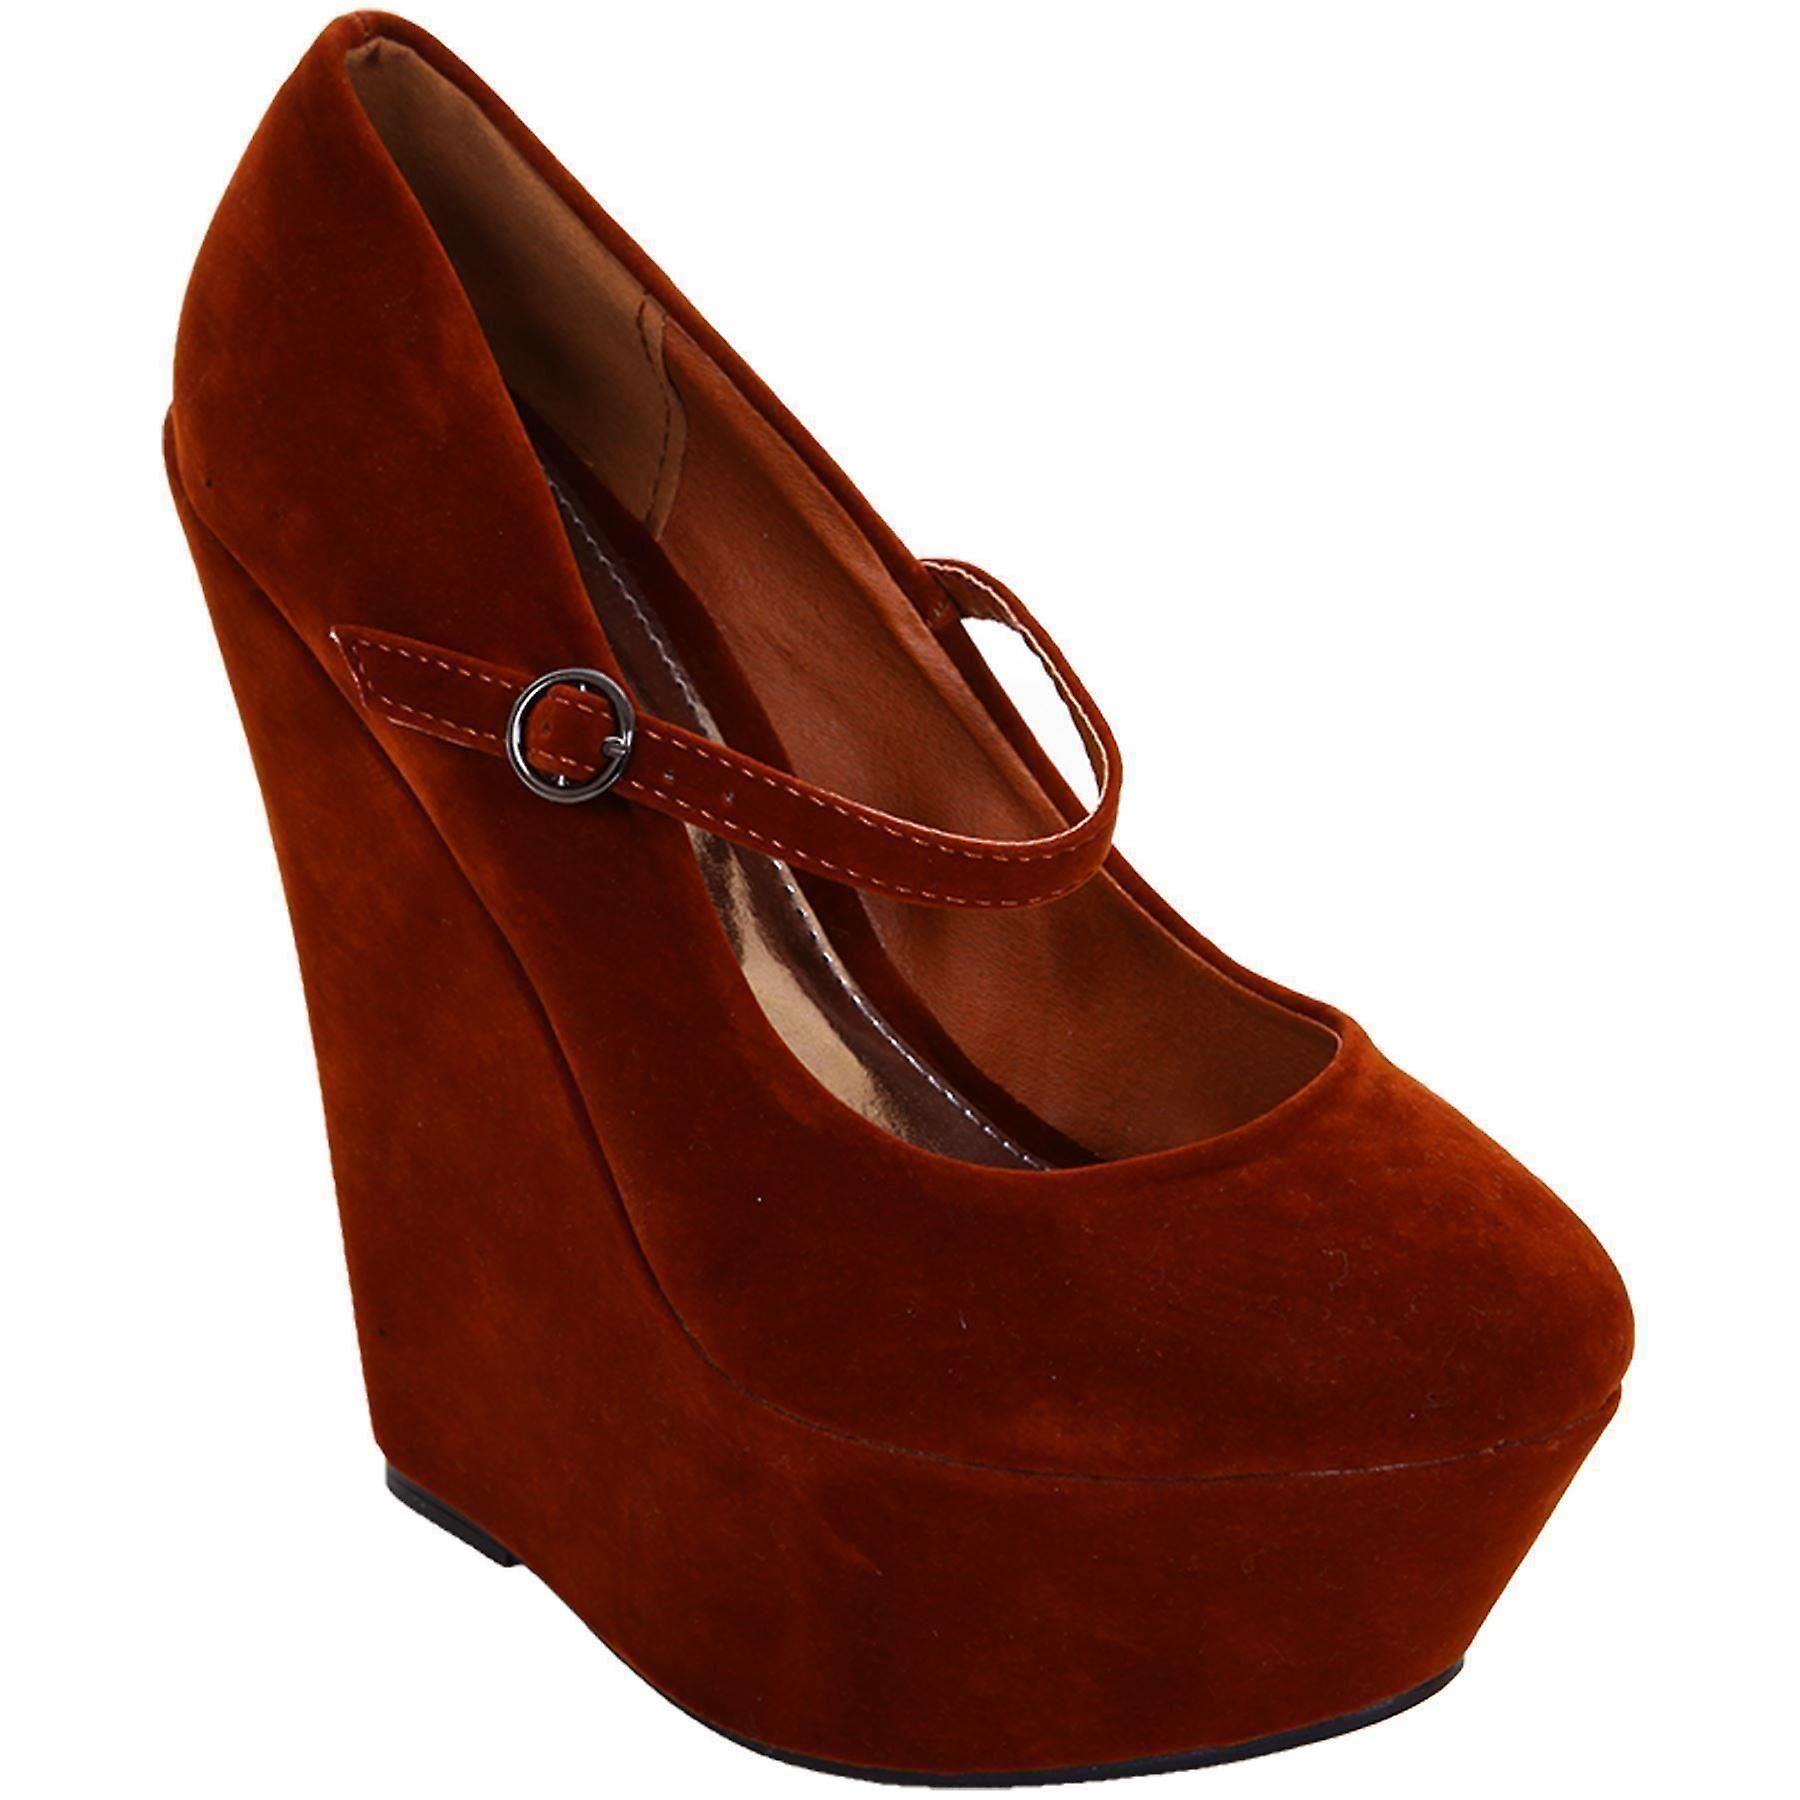 Ladies High Wedge Suede Shoes Women's Ankle Strap Party Platform Wedges